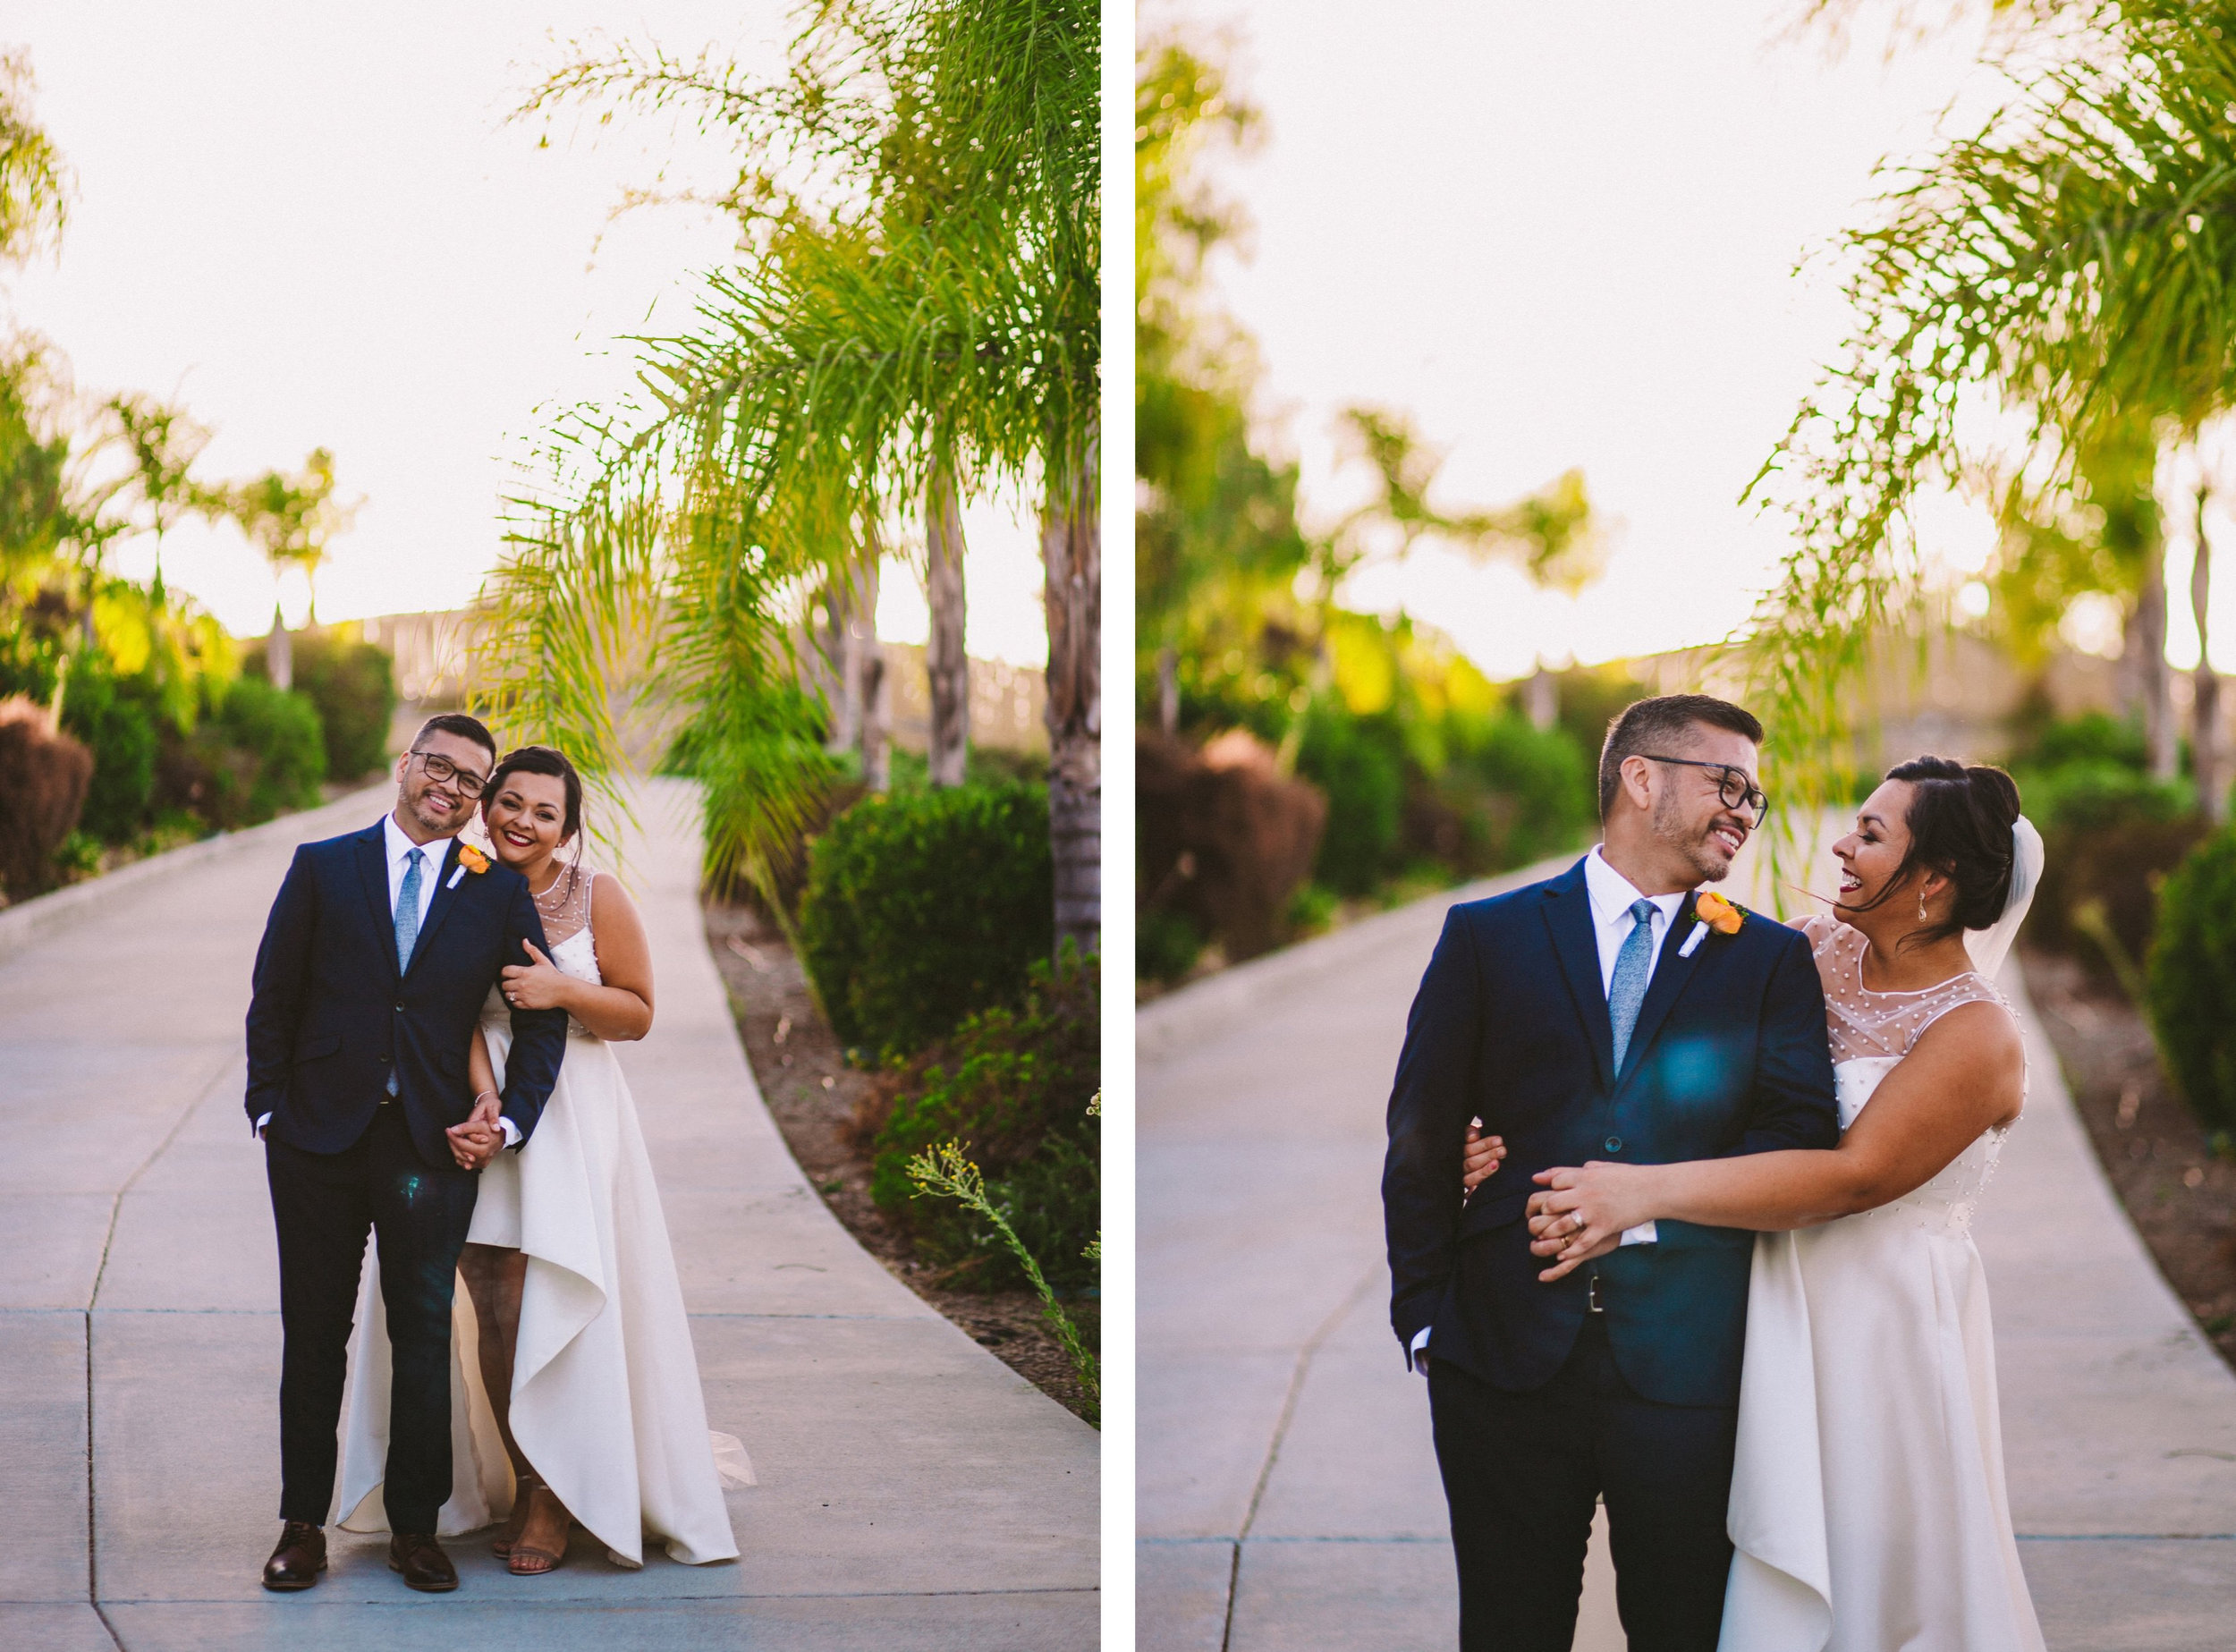 Intimate & colorful Temecula Documentary Wedding Photography-77.jpg